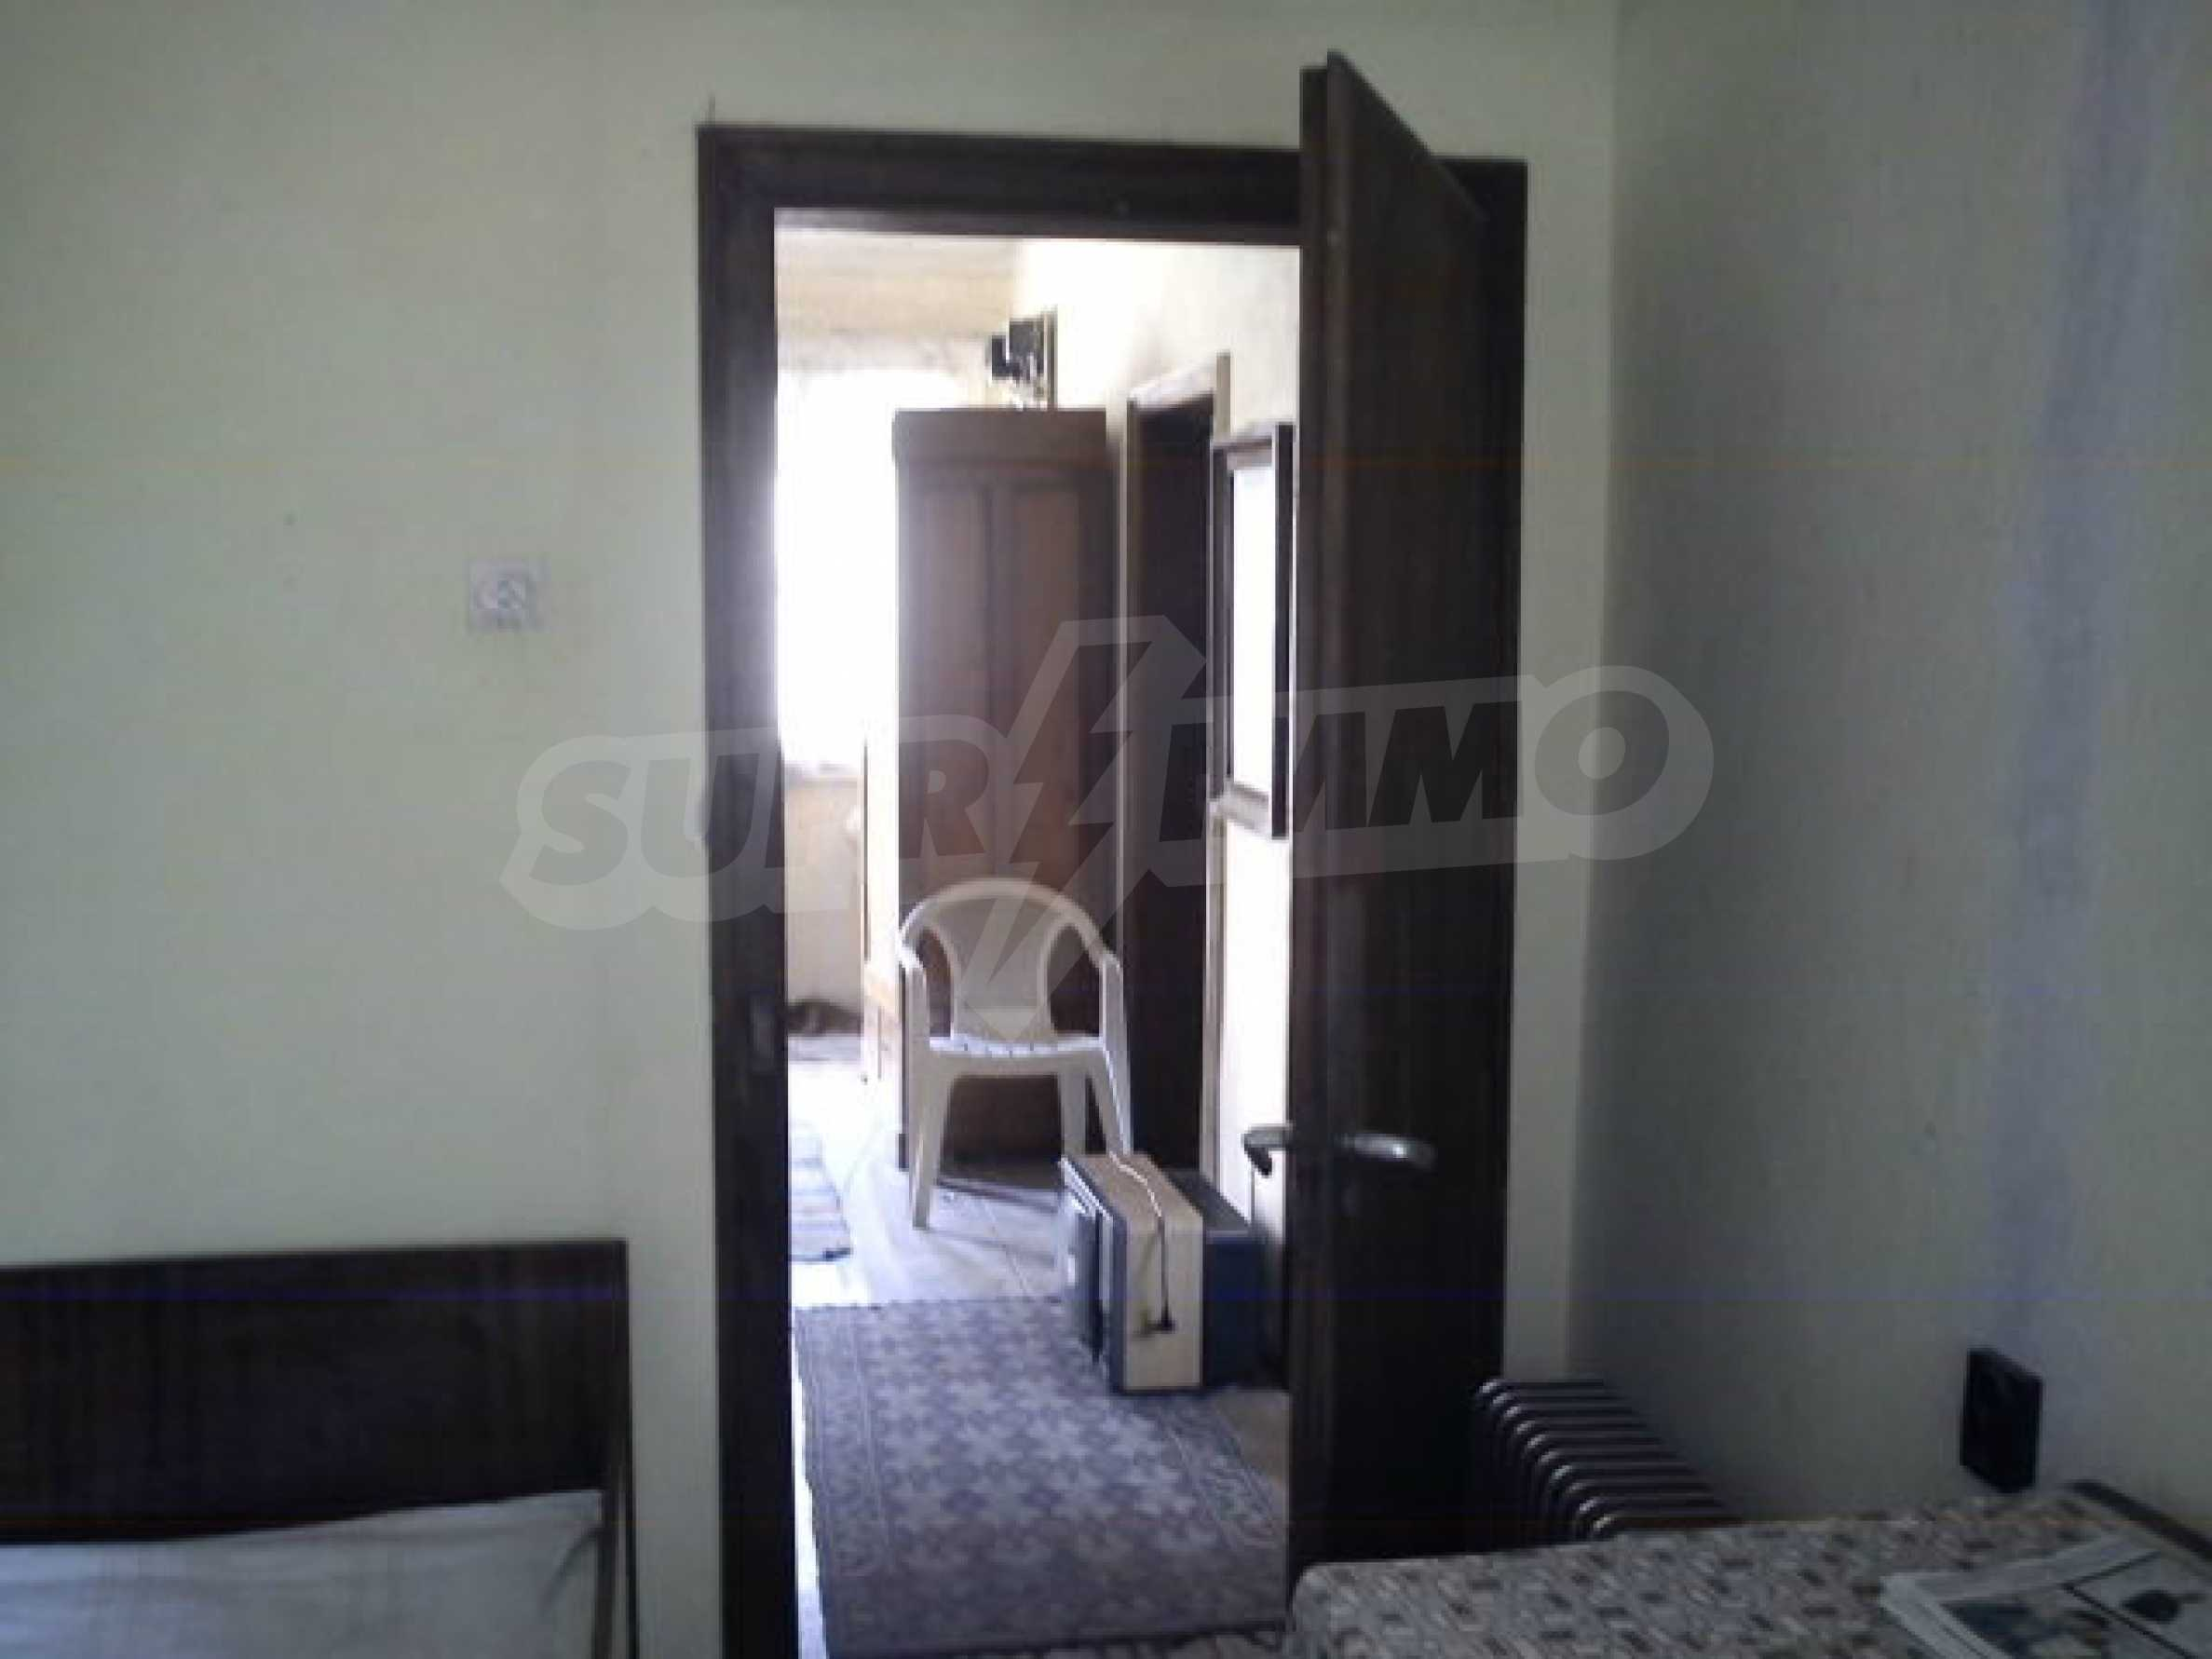 Second floor of a house located in Veliko Tarnovo 15